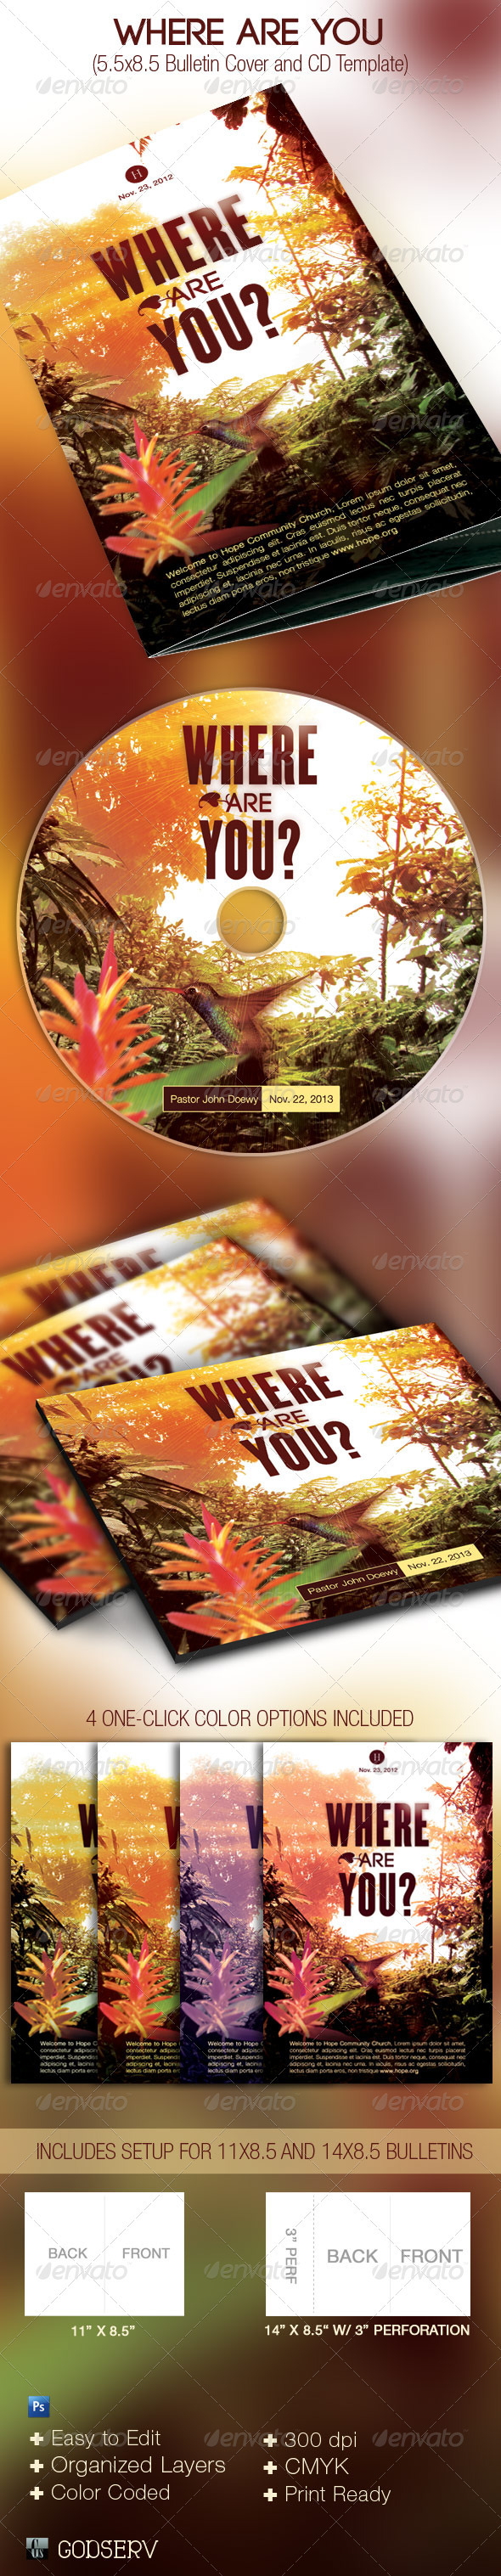 Where Are You Church Bulletin and CD Template - Miscellaneous Print Templates